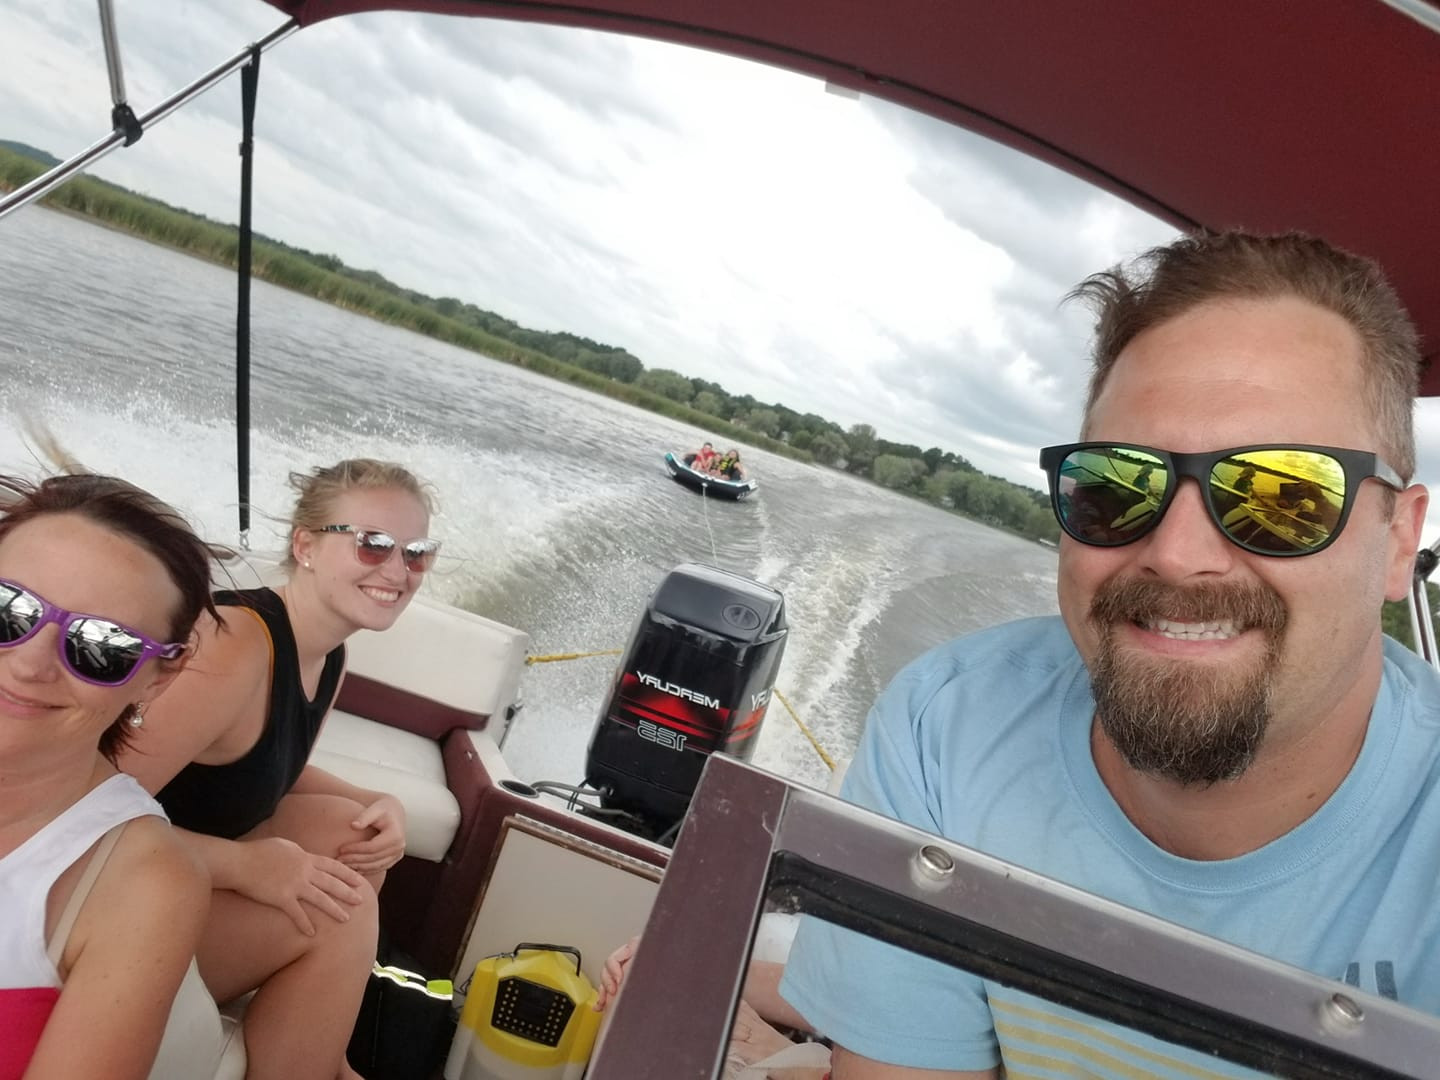 Spend the day on Lake Puckaway